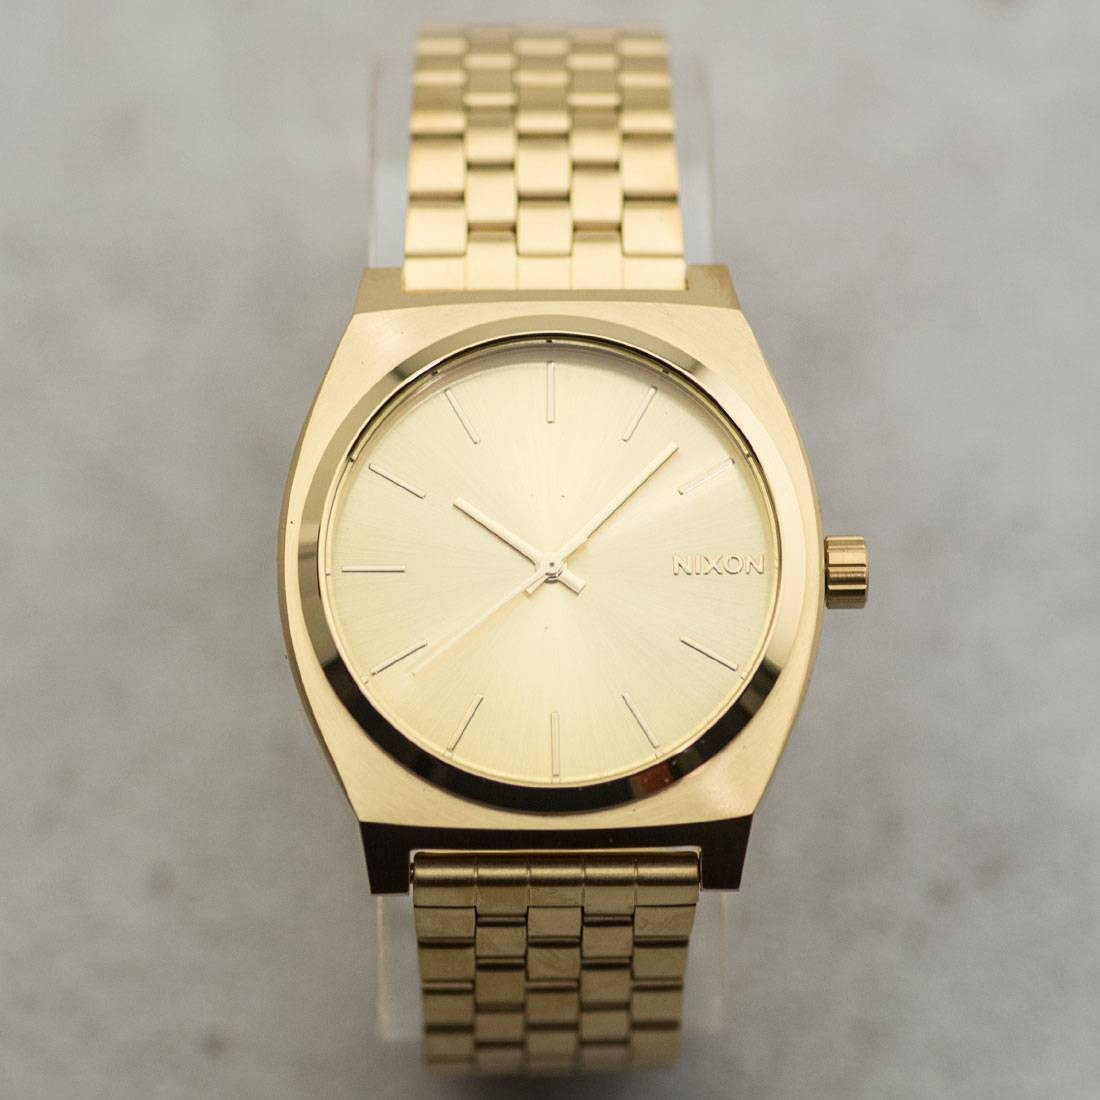 Nixon Time Teller Watch (gold / all gold)